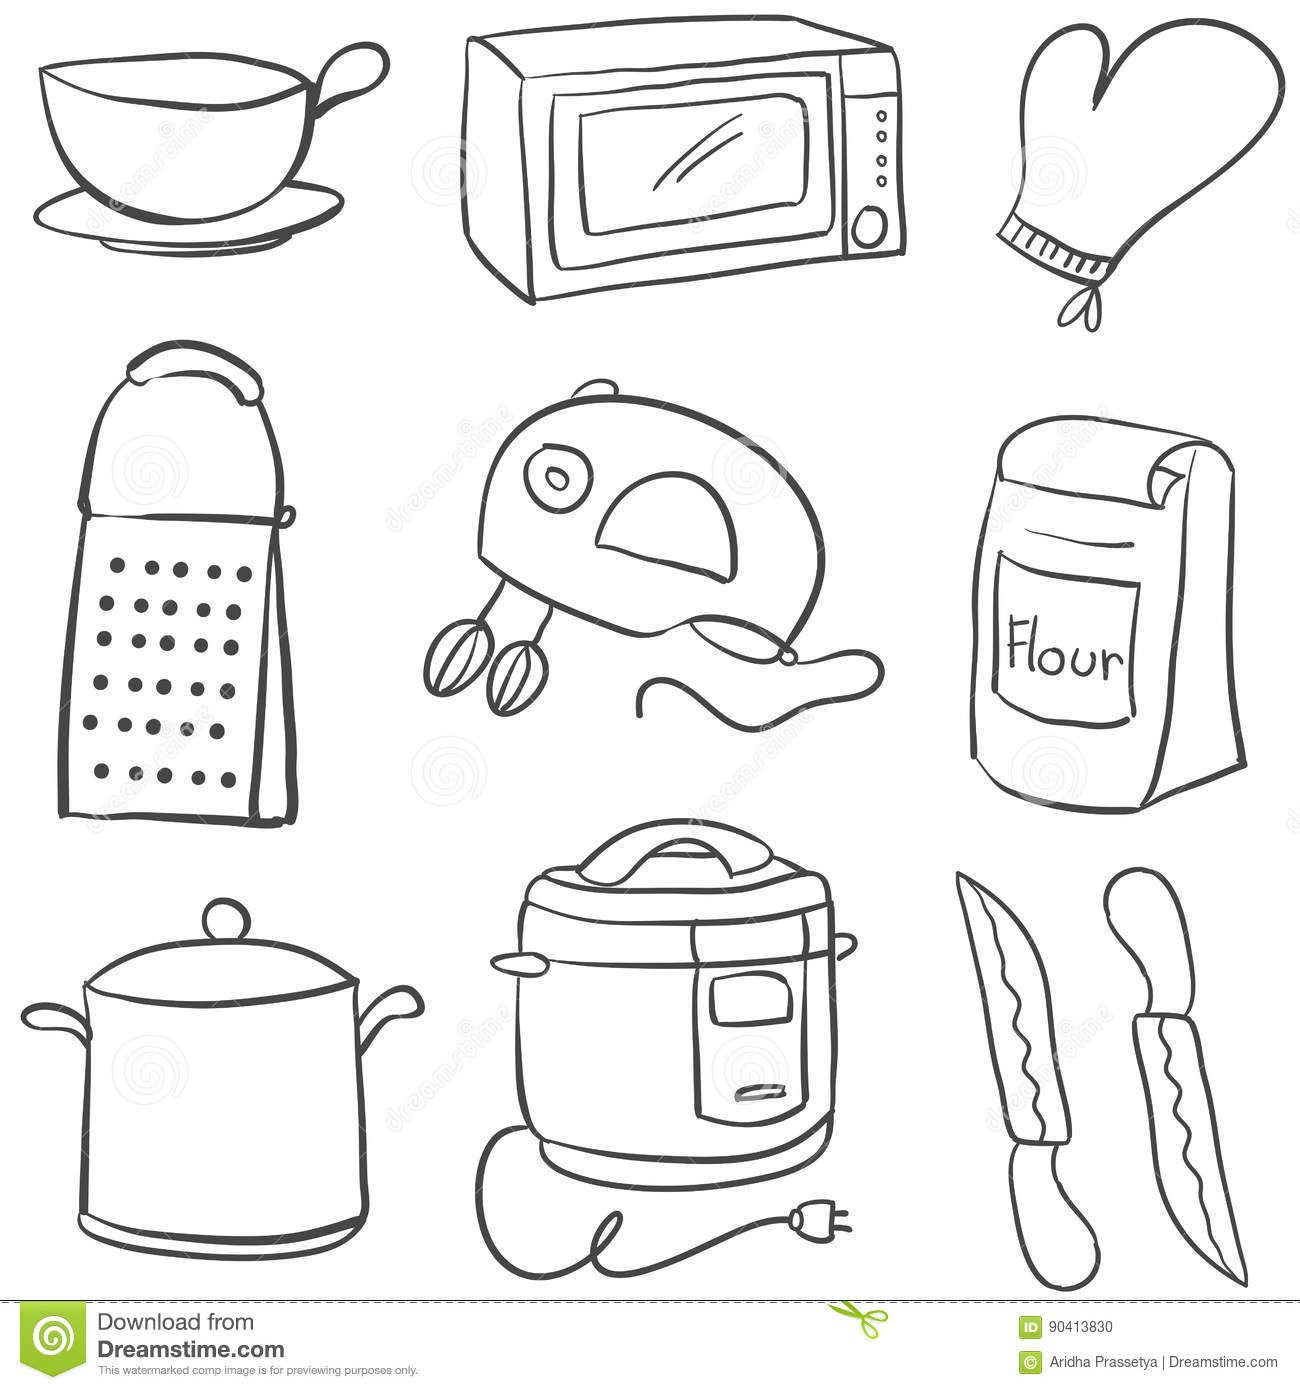 Doodle Of Equipment Kitchen Object Stock Vector